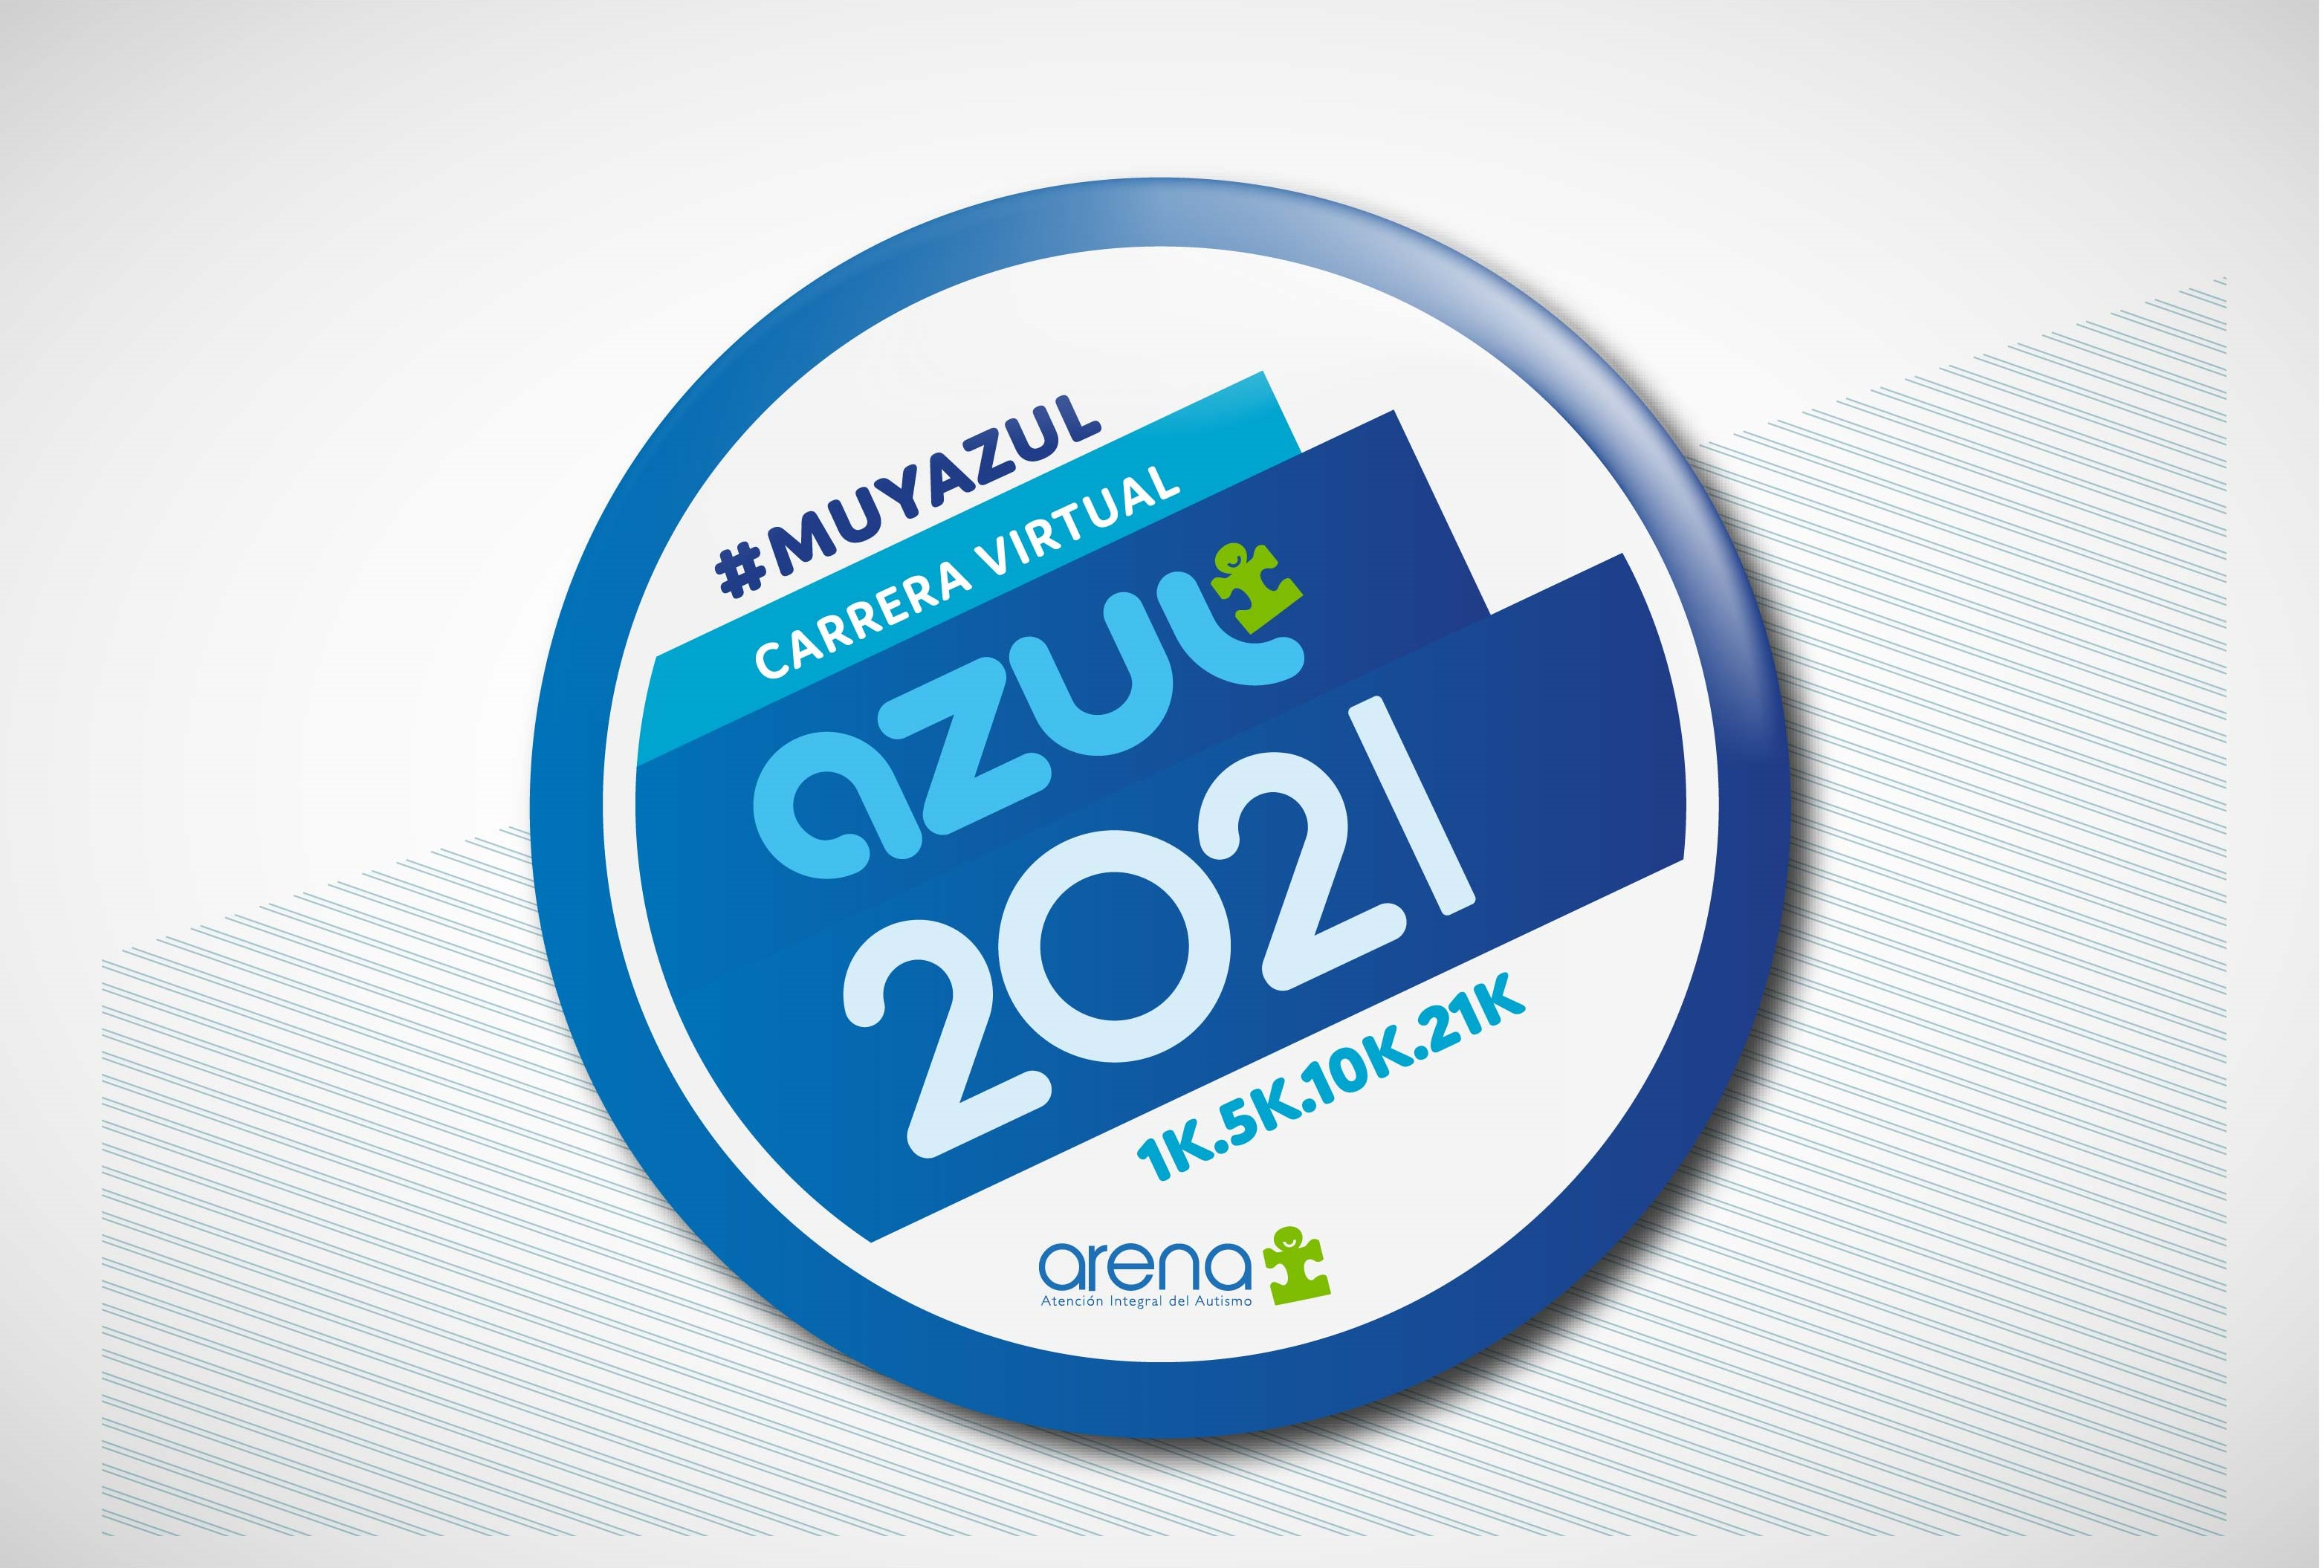 CARRERA VIRTUAL AZUL 2021